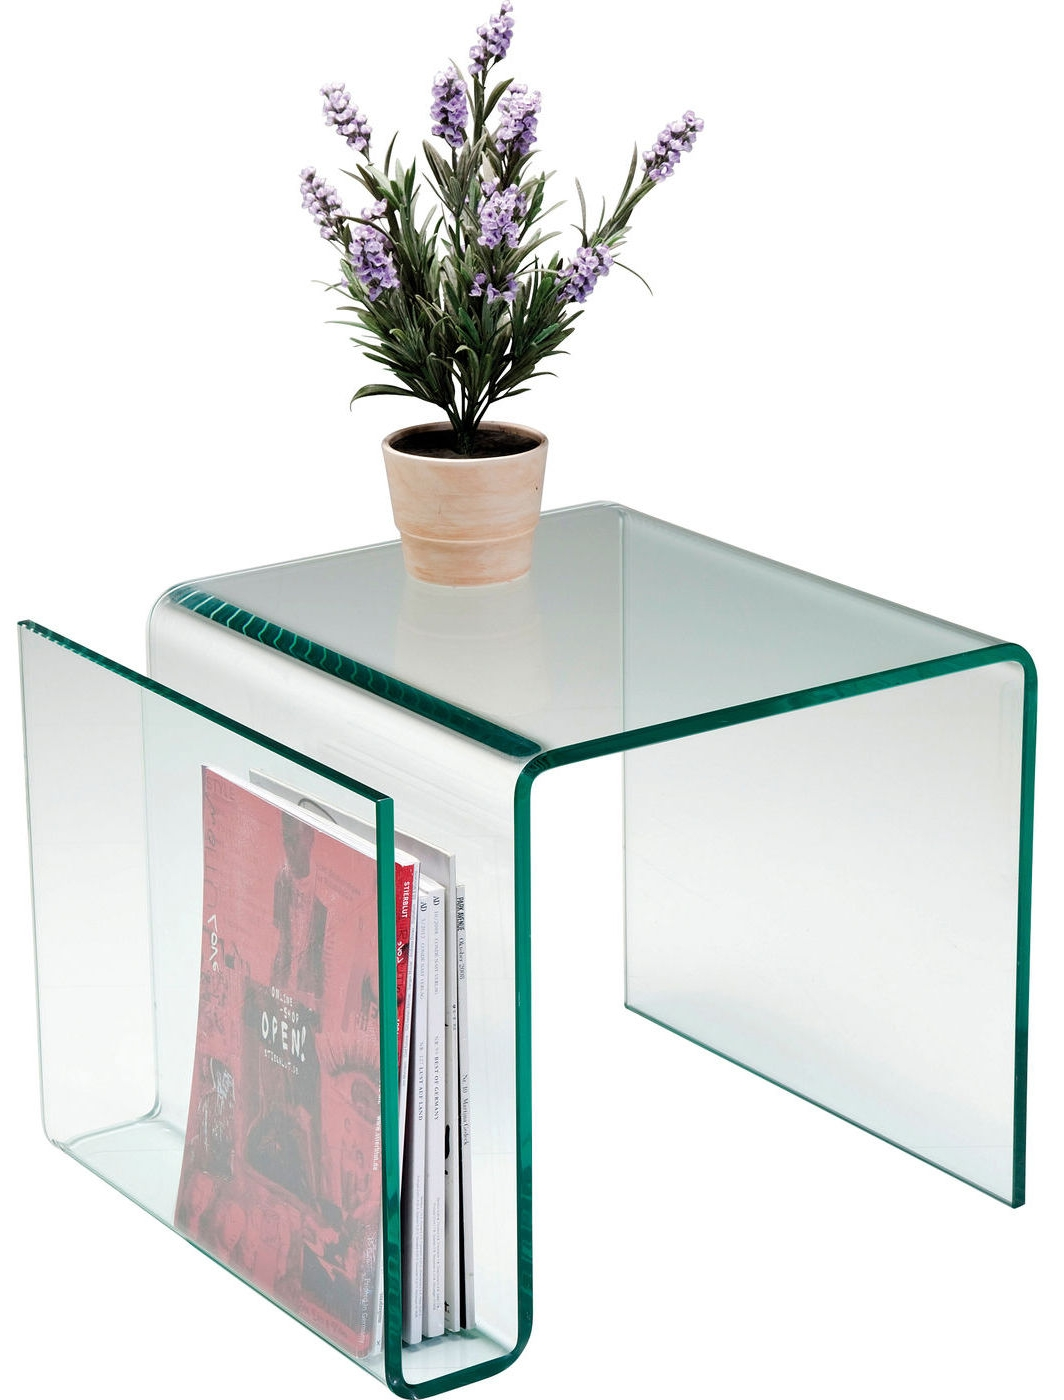 Kare Design Bijzettafel Newspaper Clear Club - L38 X B48 X H42 Cm - Glas